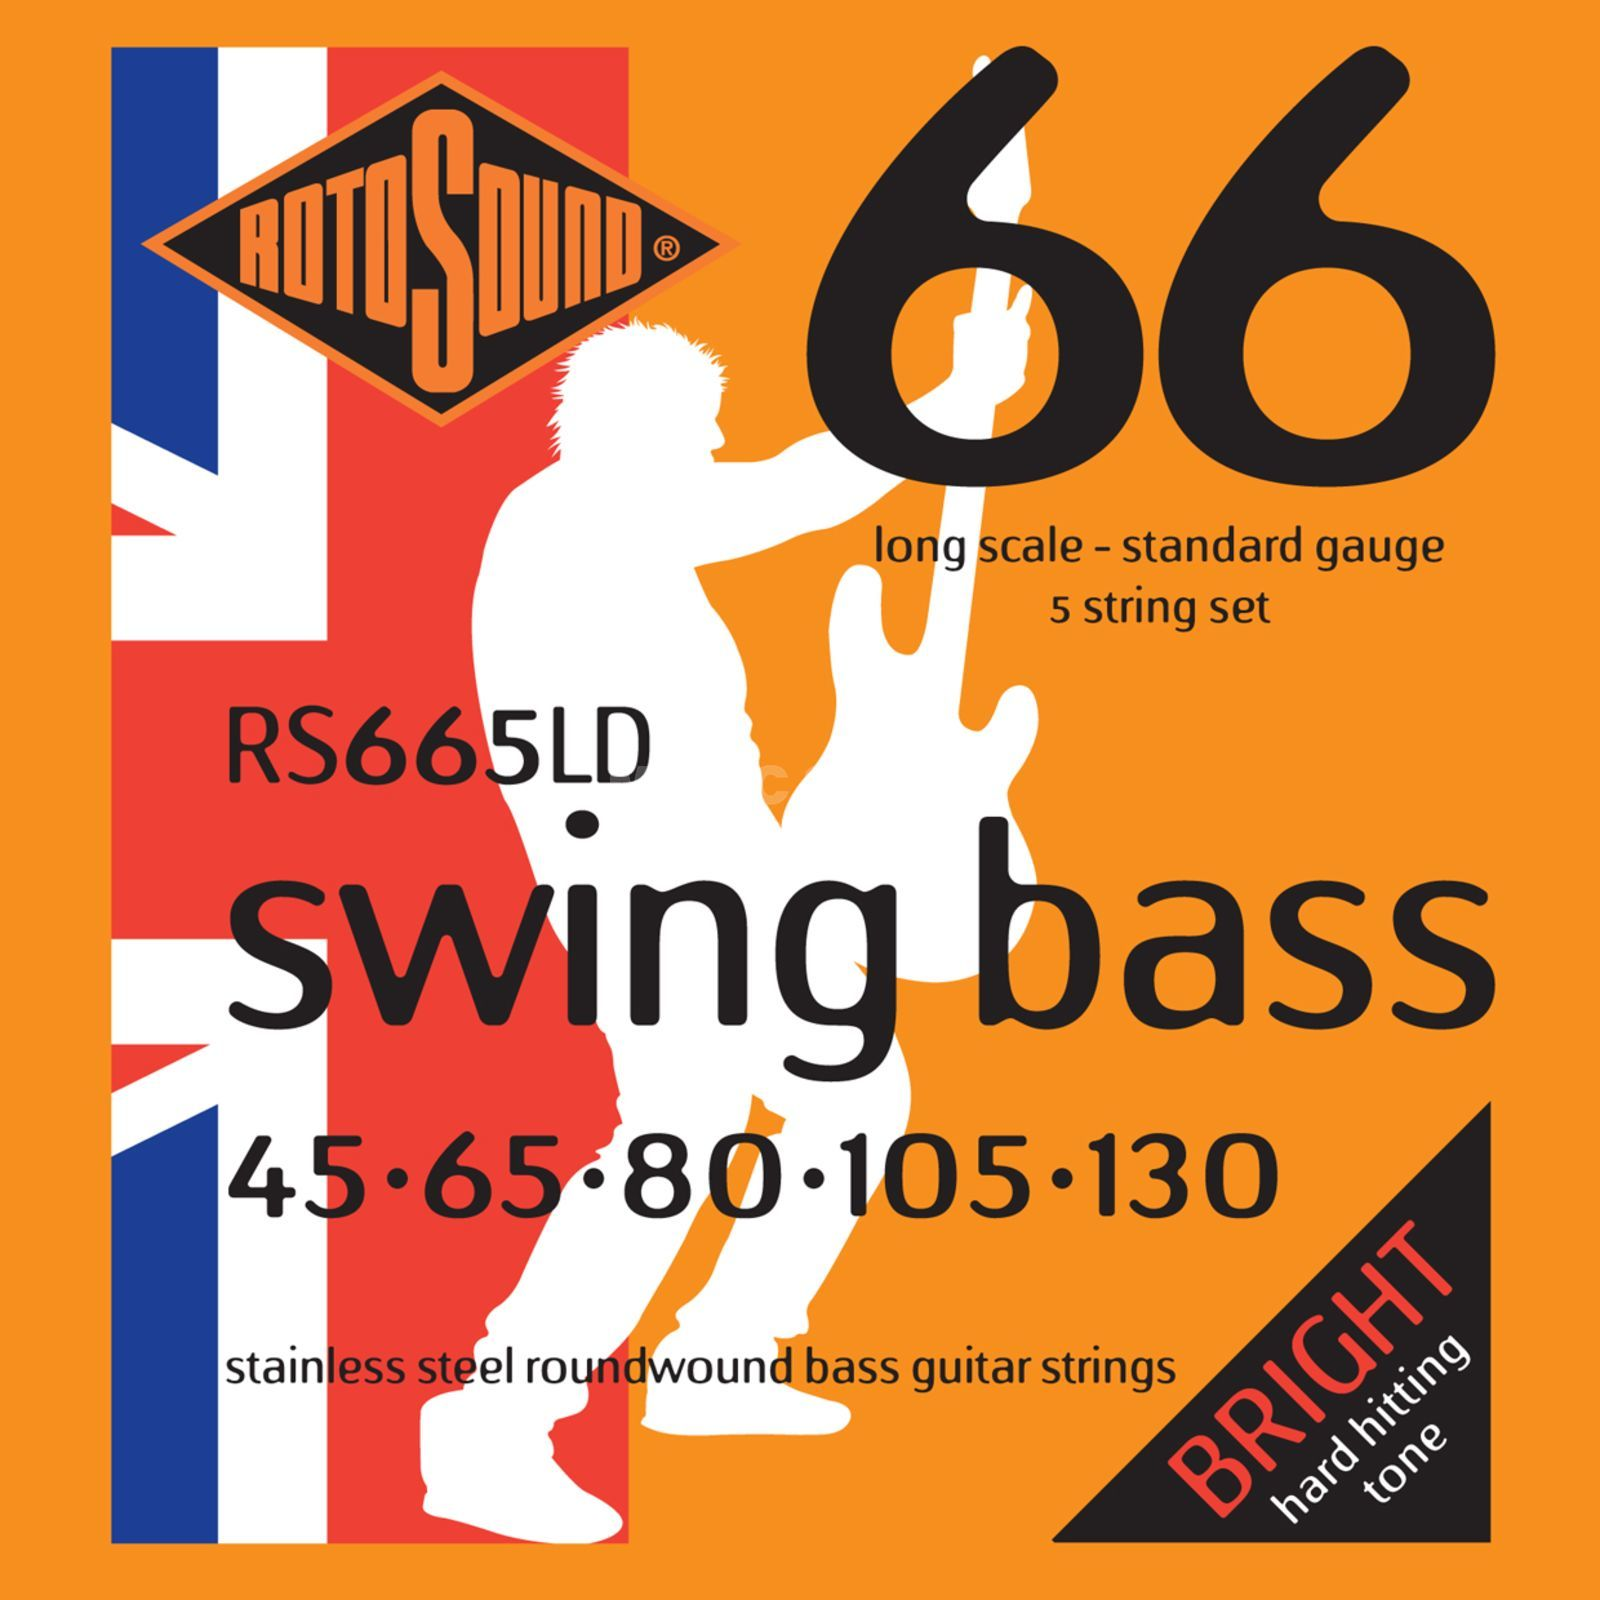 Rotosound bas snaren RS665LD 5er 45-130 Swing bas 66, Stainless Steel Productafbeelding